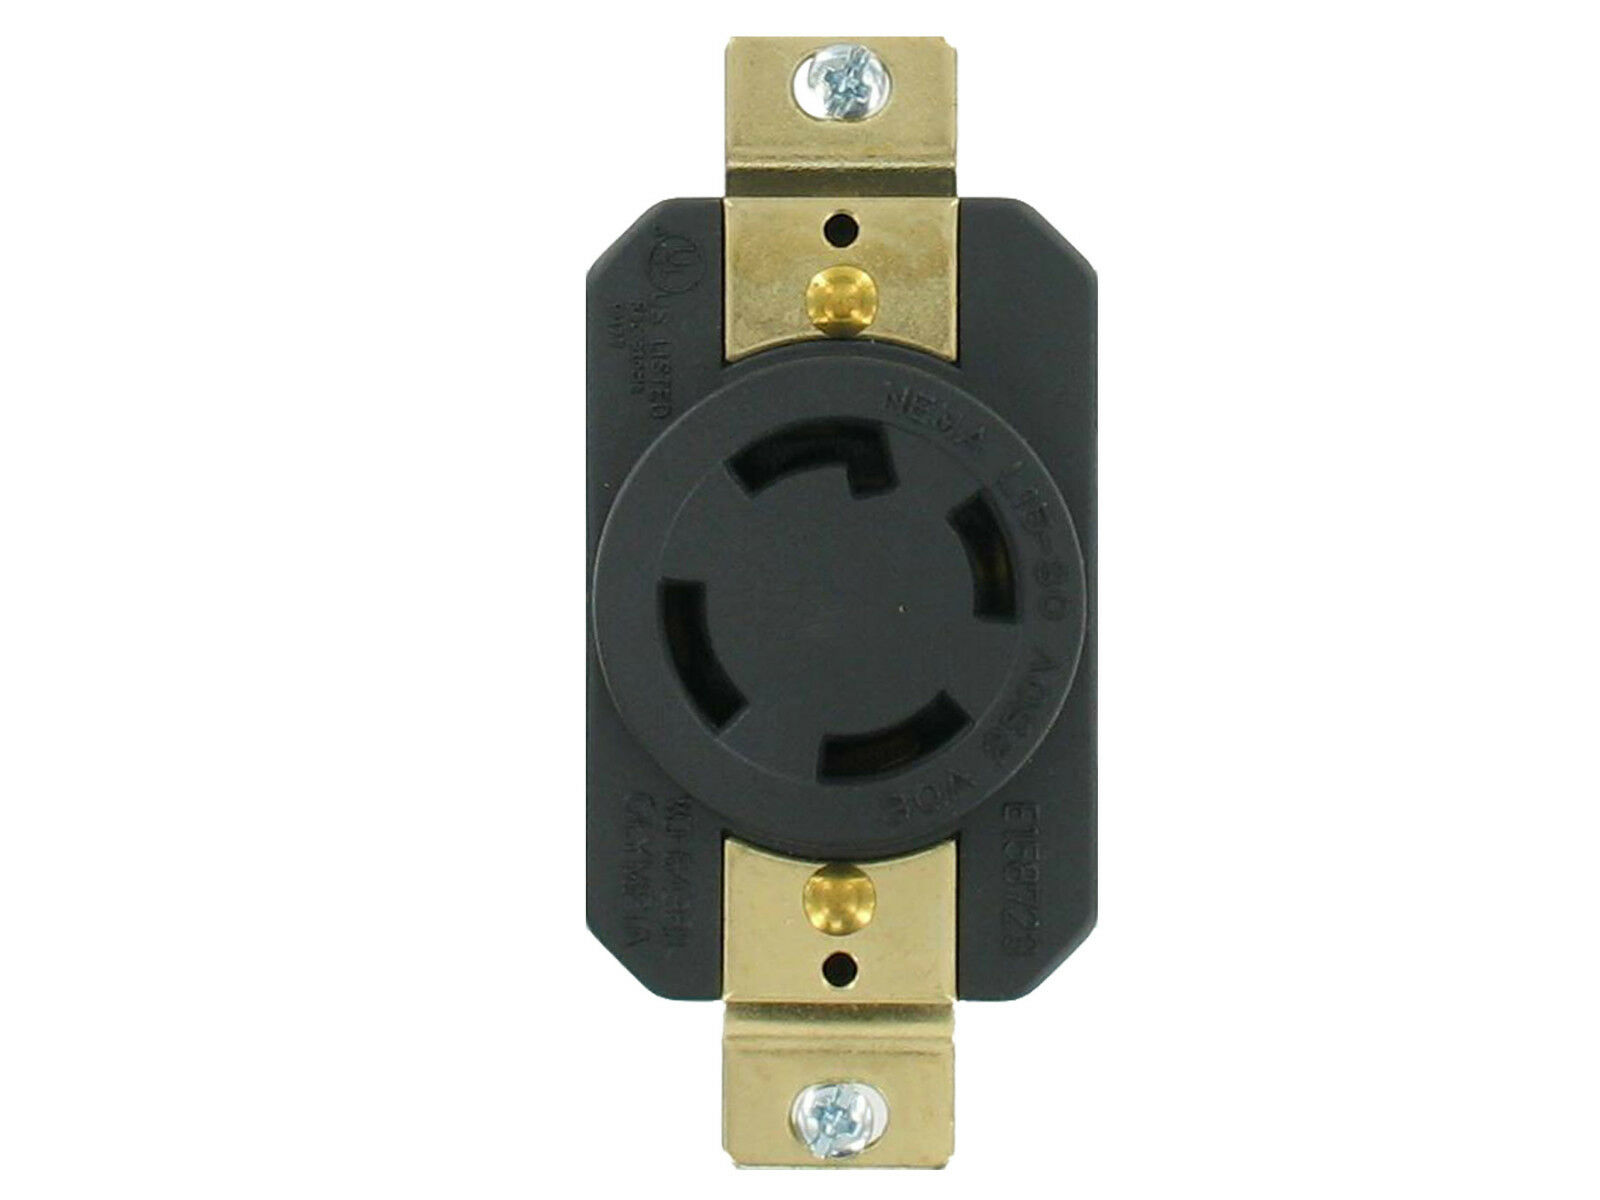 Nema L15 30 Amp 250v 3 Pole 4 Wire Grounding Single Outlet Electrical Receptacle 20 Amps 6 20r Yga022f Ebay 1 Of 2free Shipping